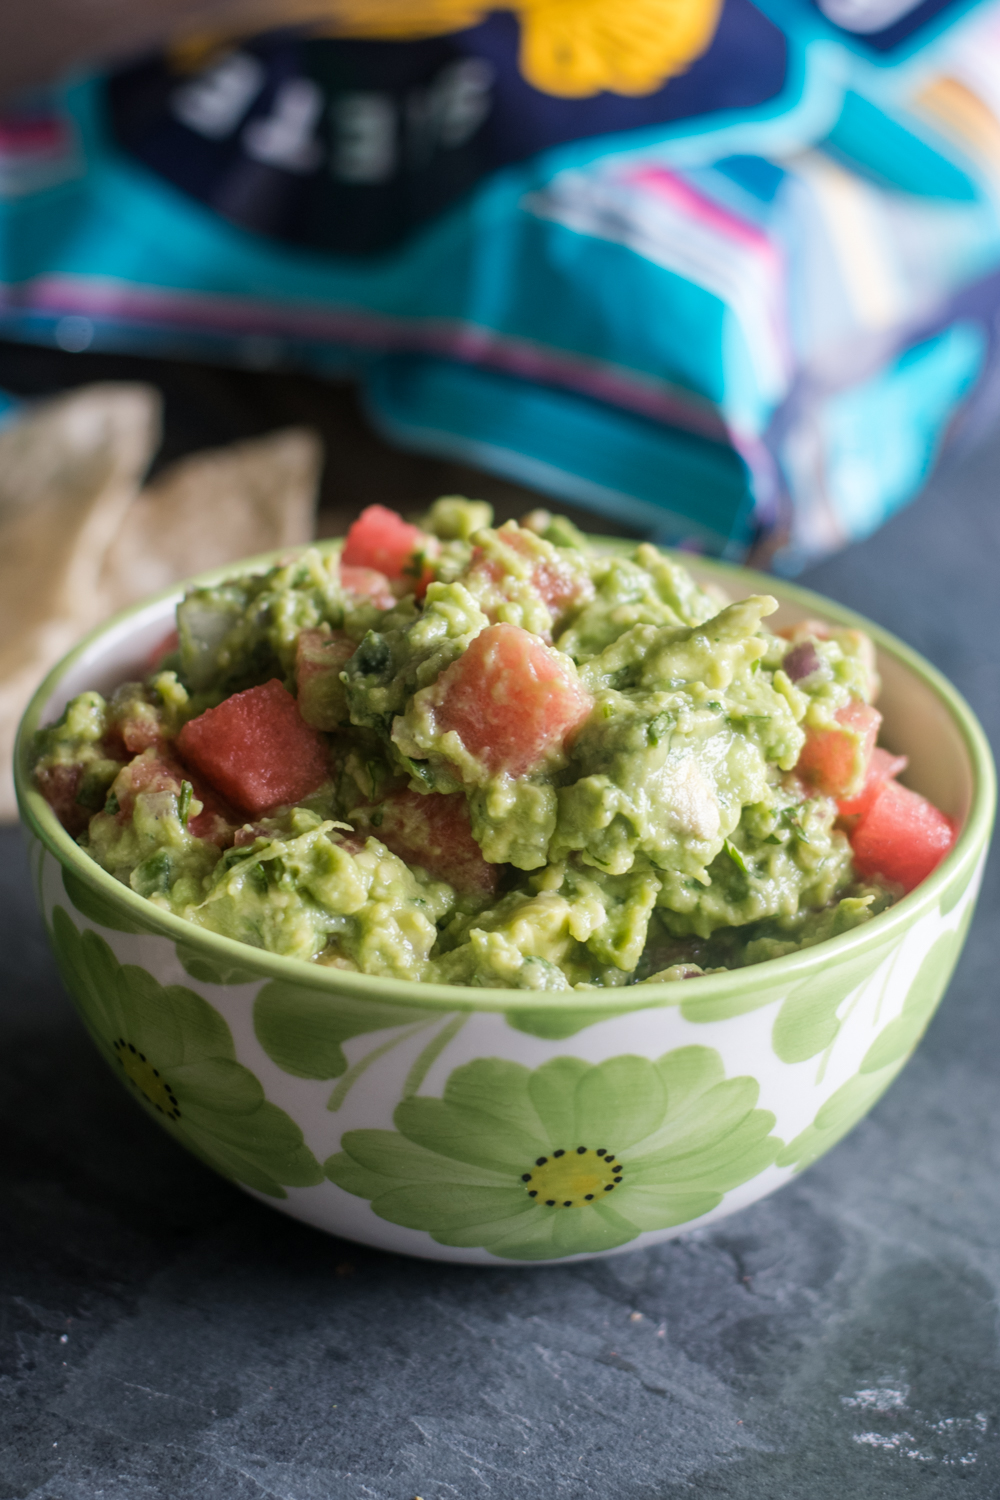 This Watermelon Guacamole is light and refreshing. Perfect for chip dipping!